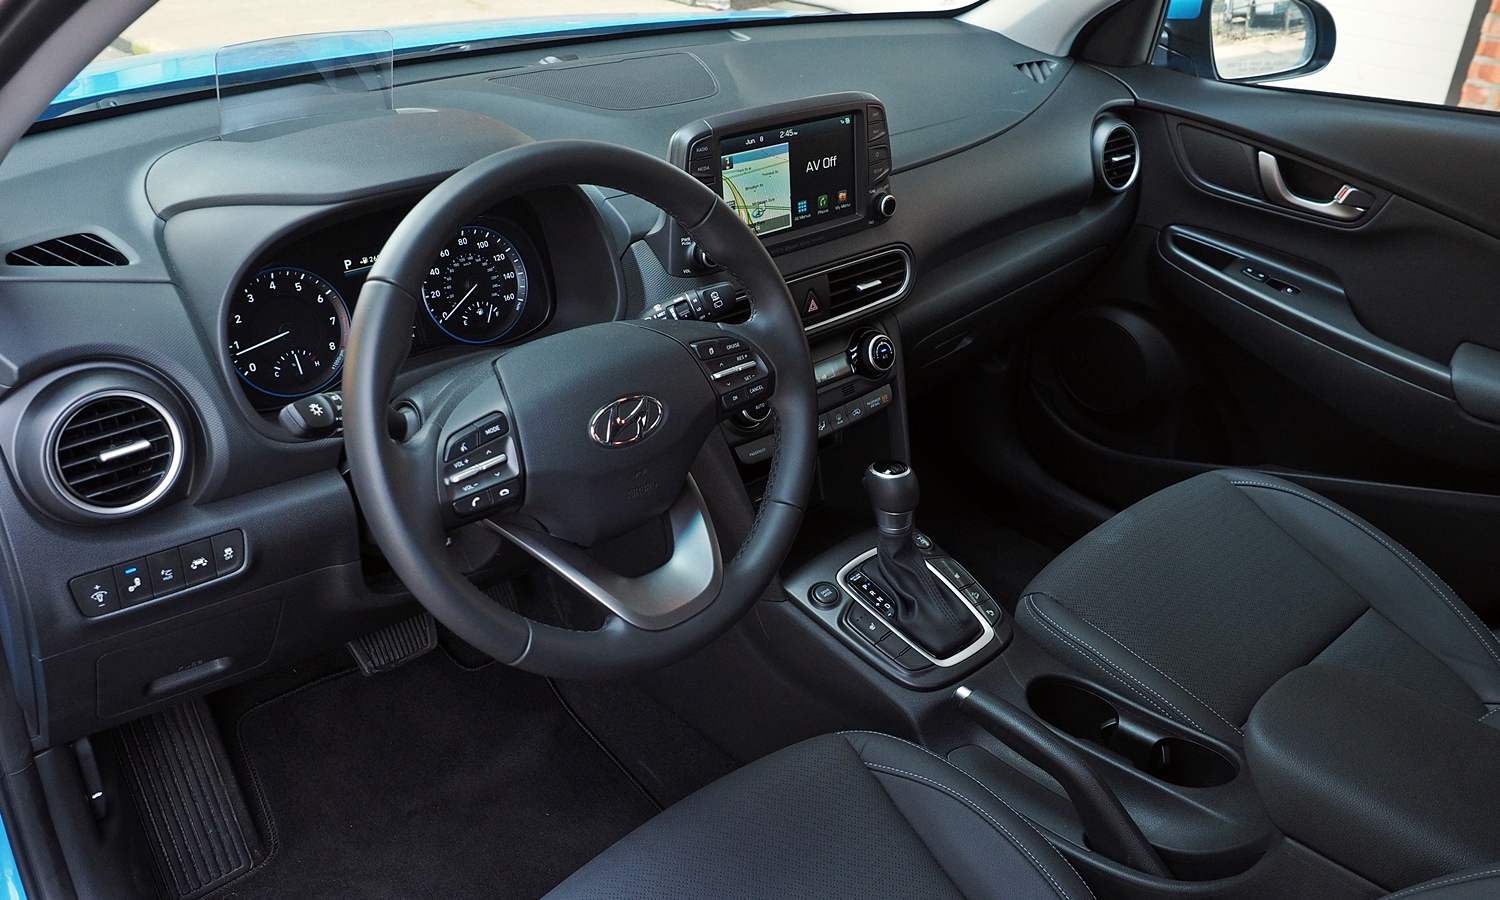 Kona Reviews: 2018 Hyundai Kona interior